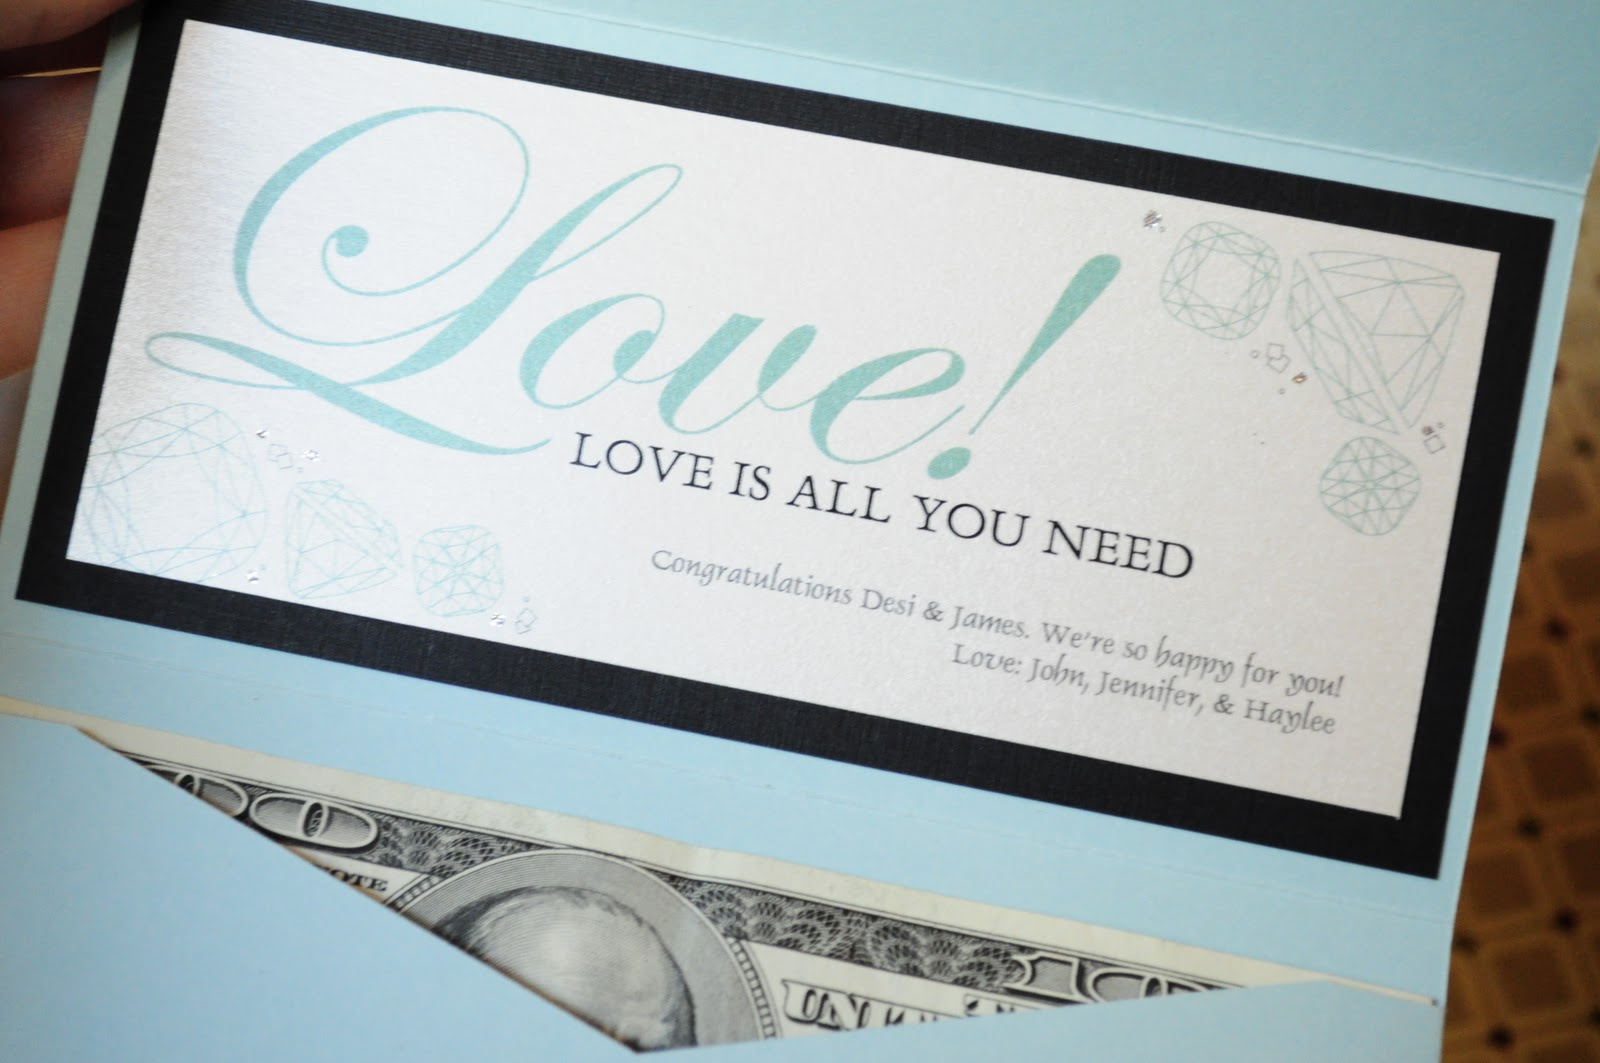 Gift Card Or Check For Wedding Gift : greeting cards. Designed for cash or check gifts. Perfect for wedding ...